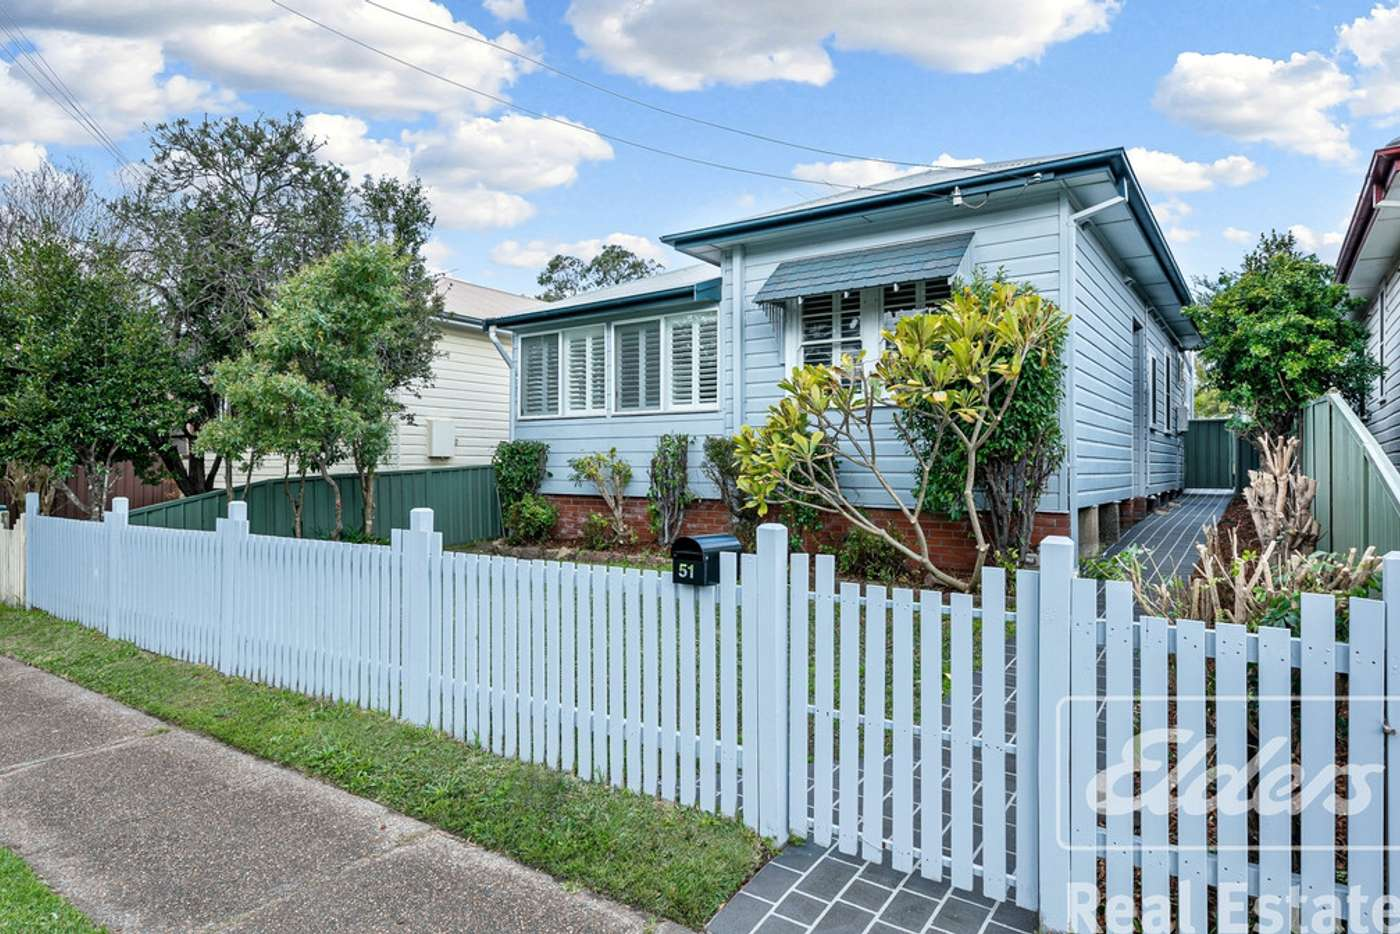 Main view of Homely house listing, 51 Howe Street, Lambton NSW 2299